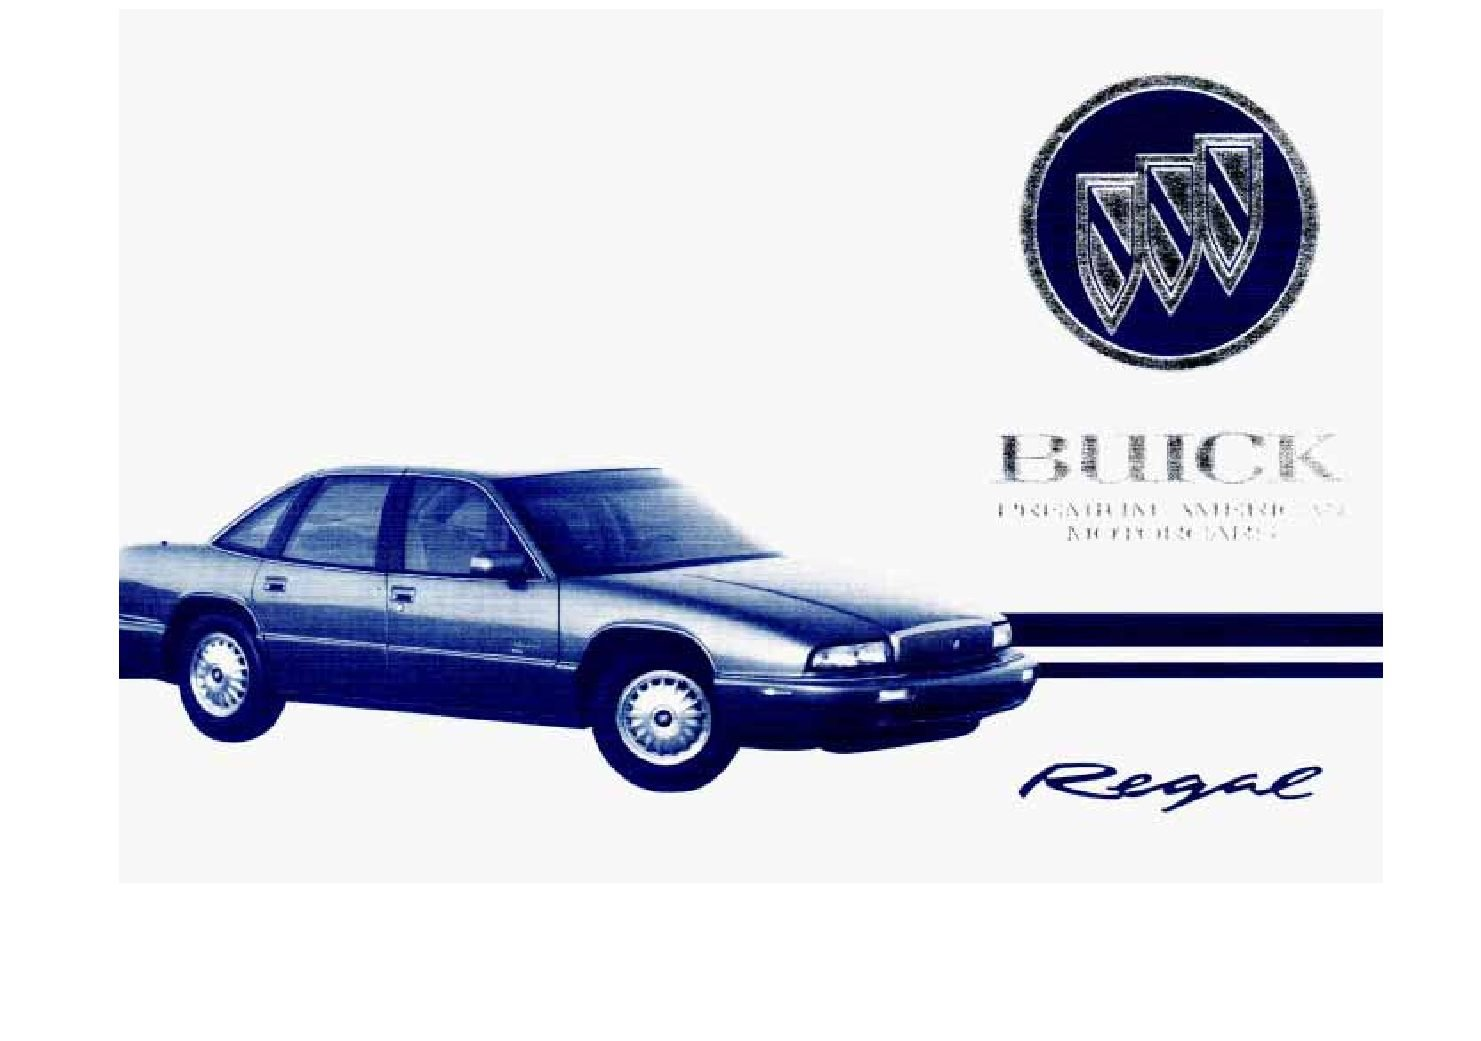 1995 buick regal owners manual just give me the damn manual rh justgivemethedamnmanual com 1986 Buick Regal 2017 Buick Regal